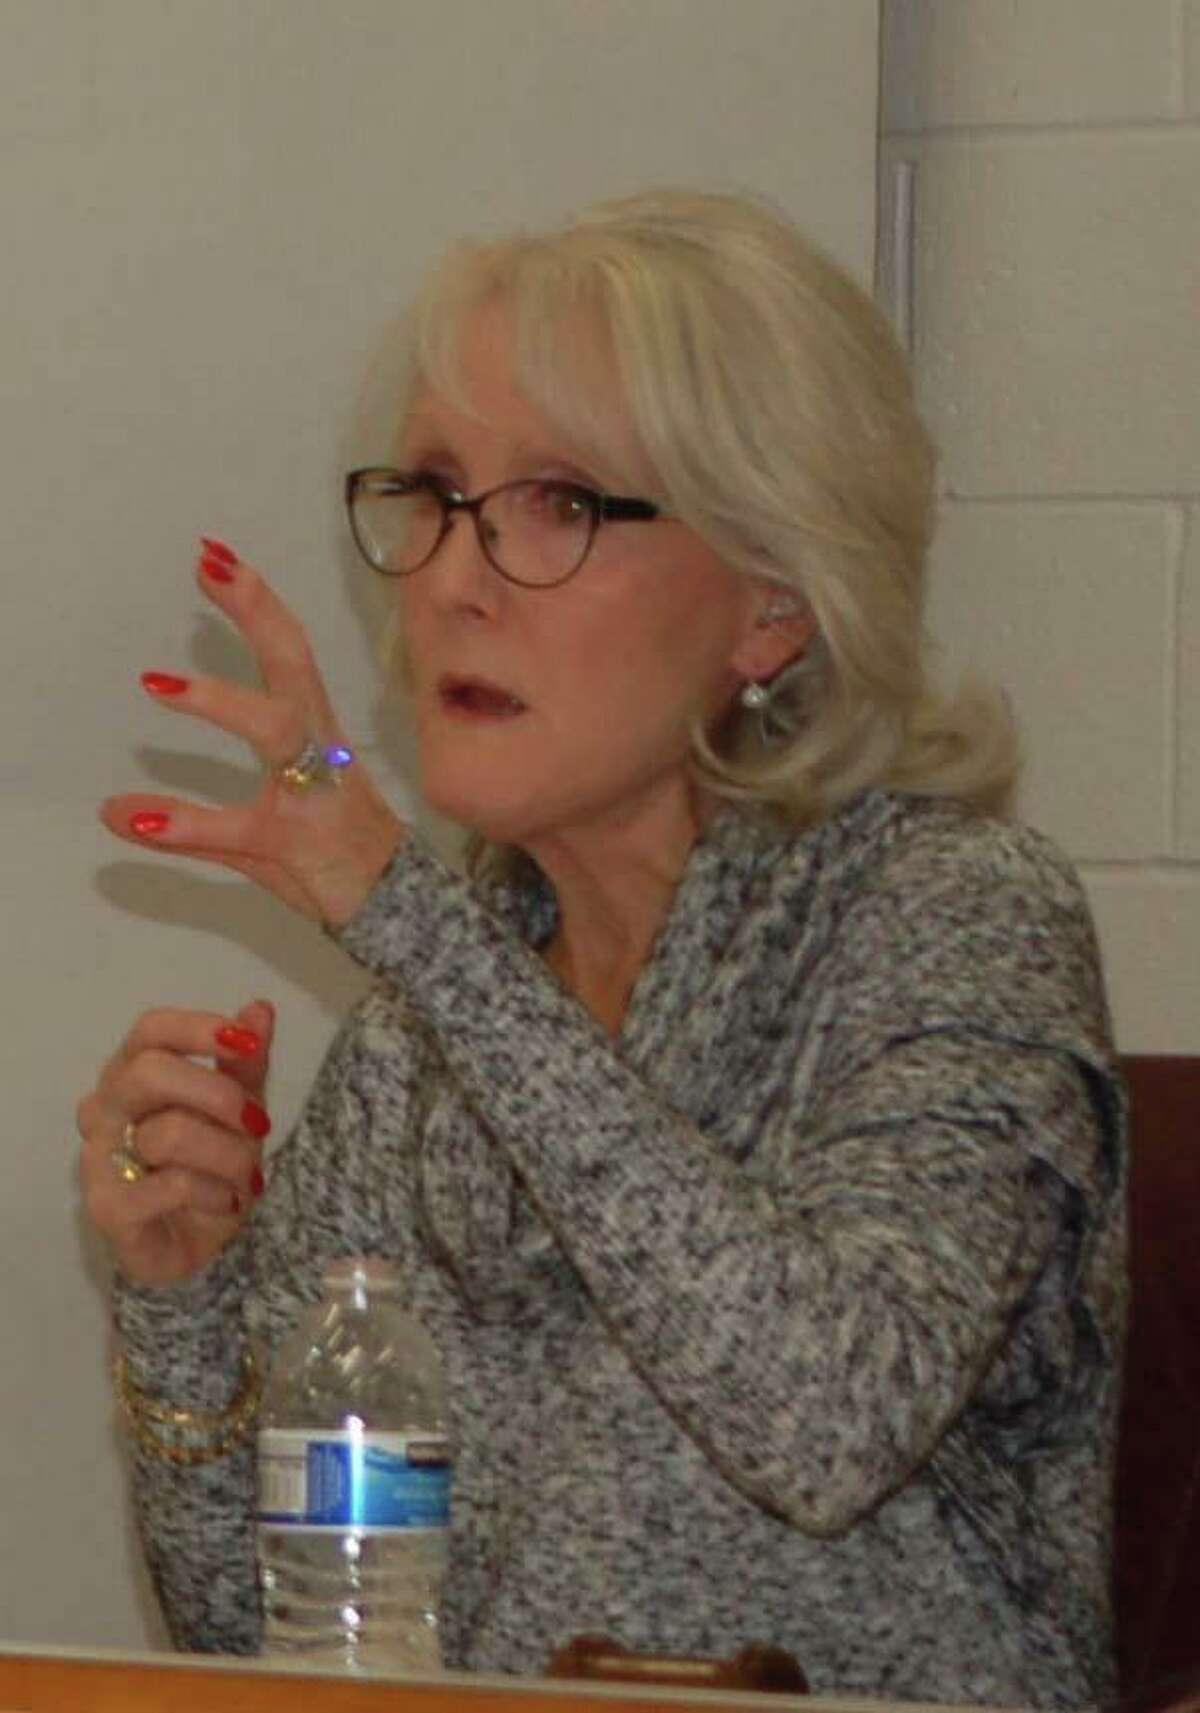 Rebecca Mucchetti was elected for another term as chairwoman of Ridgefield's Planning and Zoning Commission on Tuesday, Dec. 2, 2020. She's shown at a commission meeting in 2014.